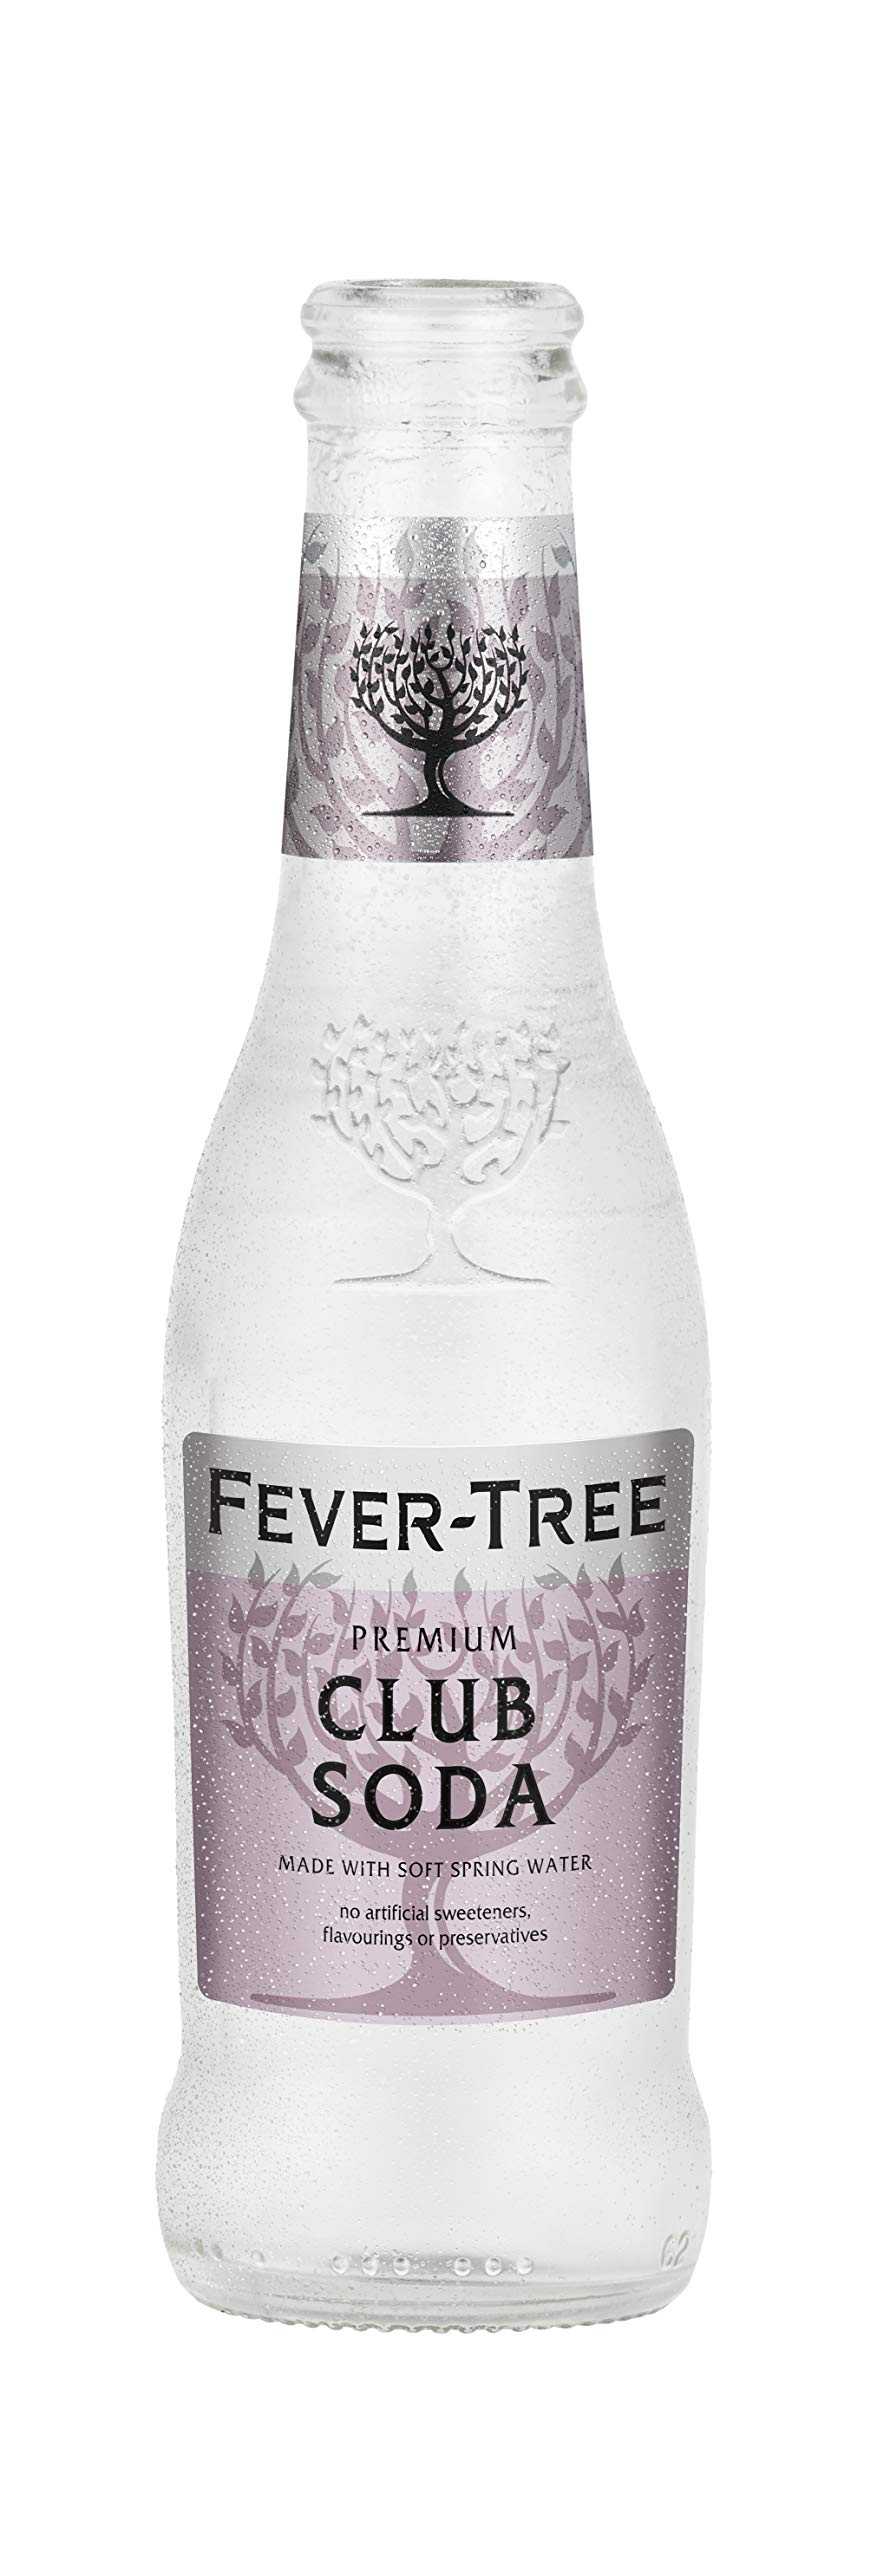 Fever-Tree Club Soda, 6.8 Ounce Glass Bottles (Pack of 24)